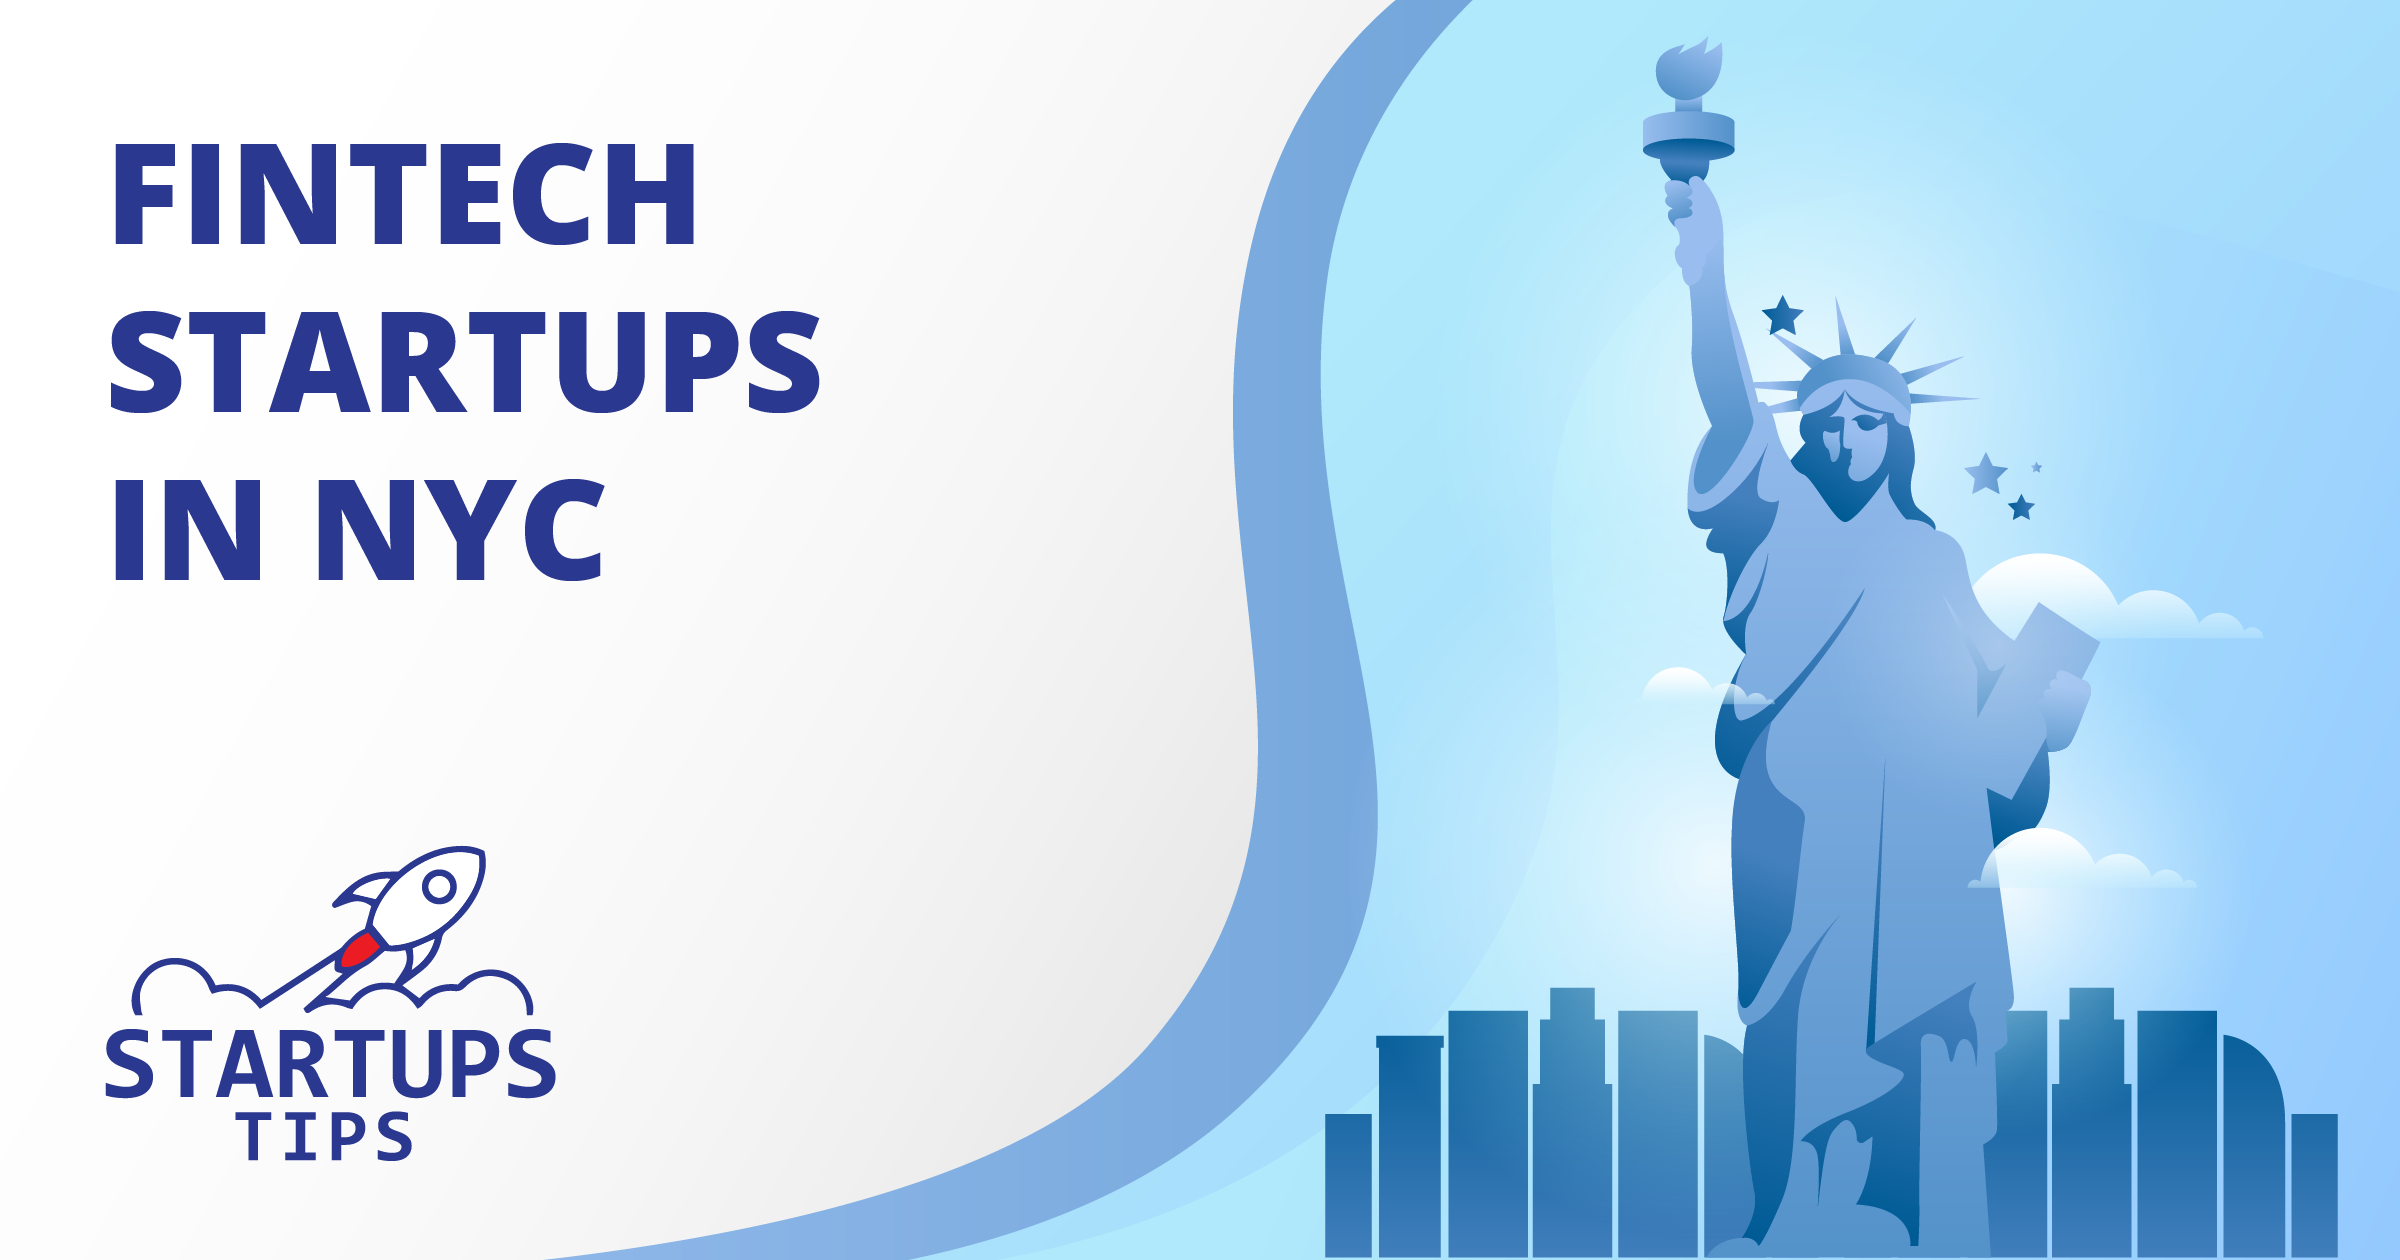 12+ Best Fintech Startups in NYC to watch in 2020